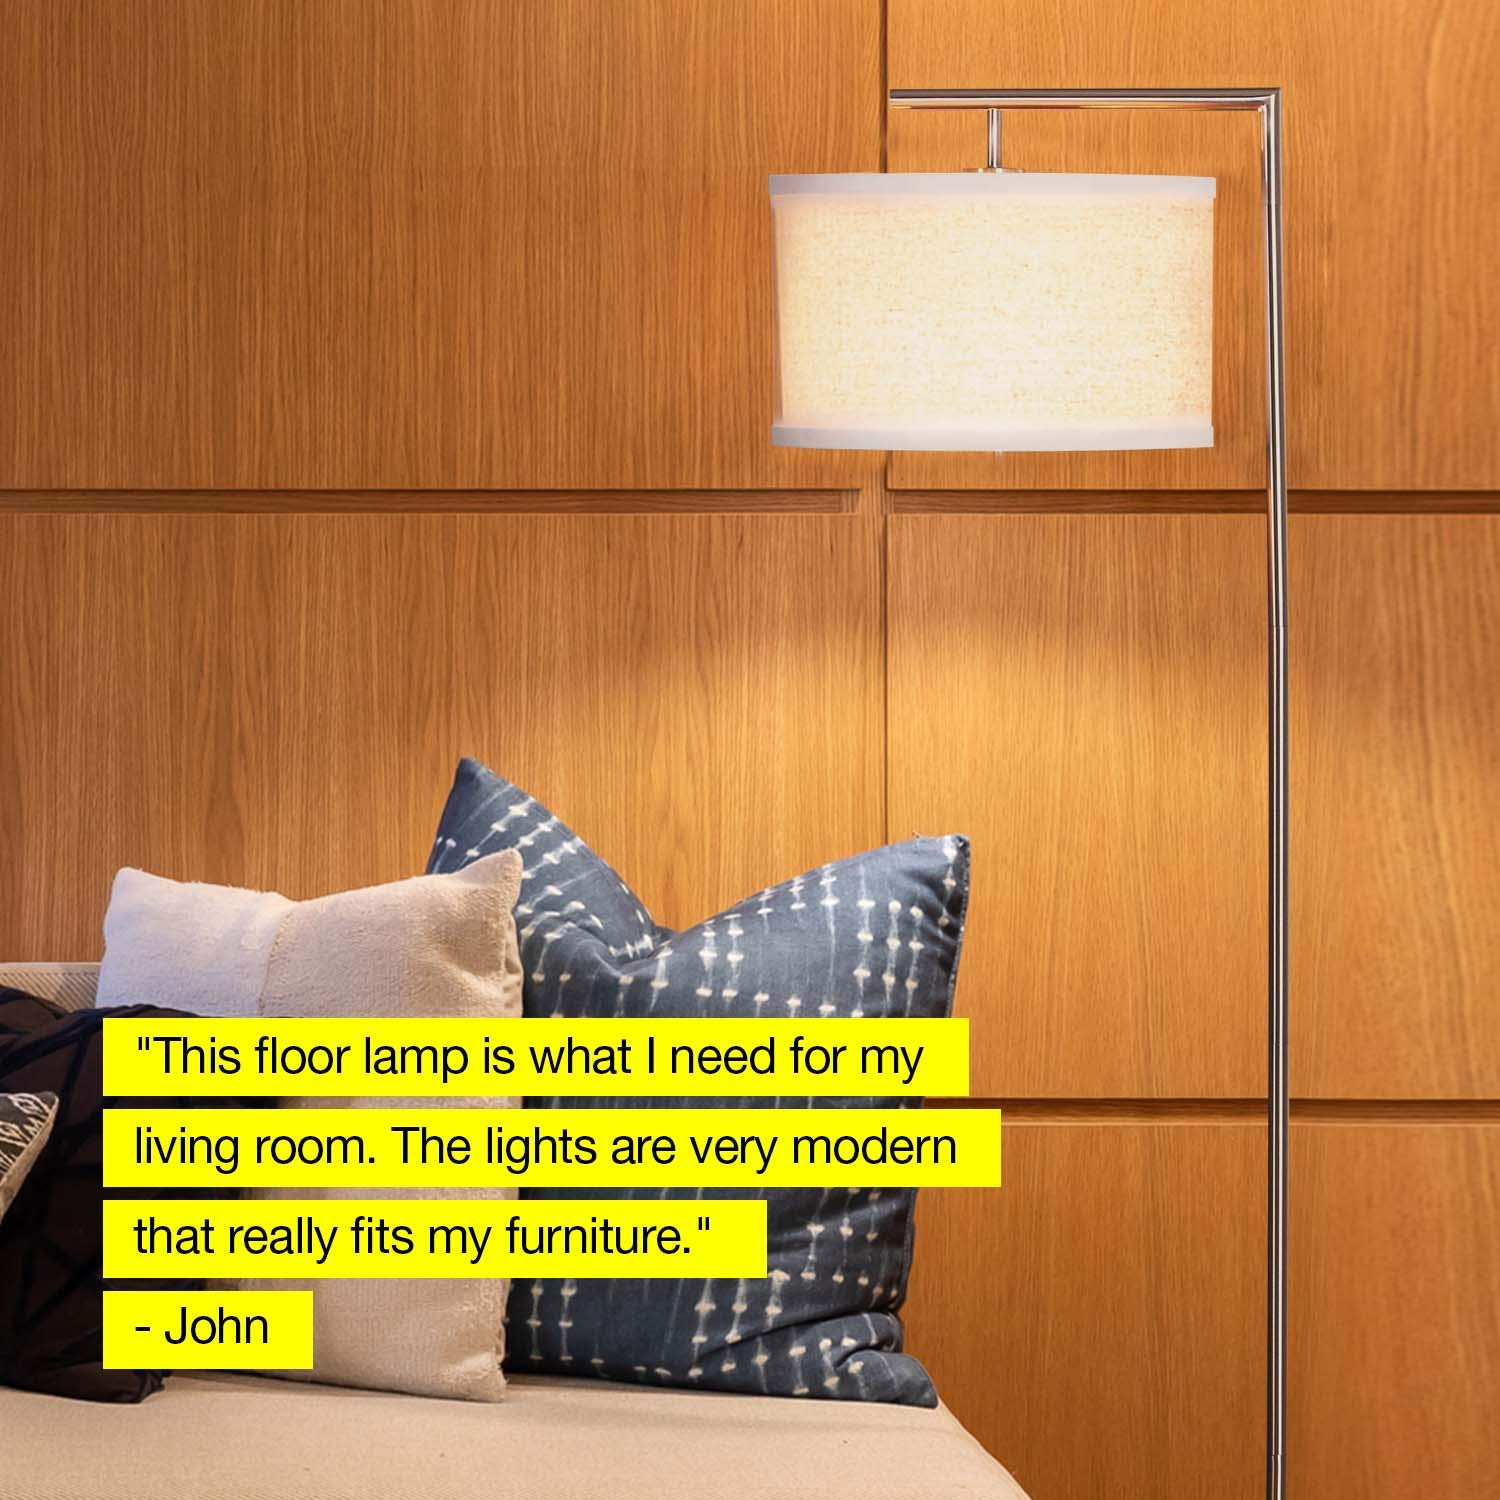 Brightech Montage Modern - LED Floor Lamp for Living Room- Standing Accent Light for Bedrooms, Office - Tall Pole Lamp with Hanging Drum Shade - Satin Nickel by Brightech (Image #4)